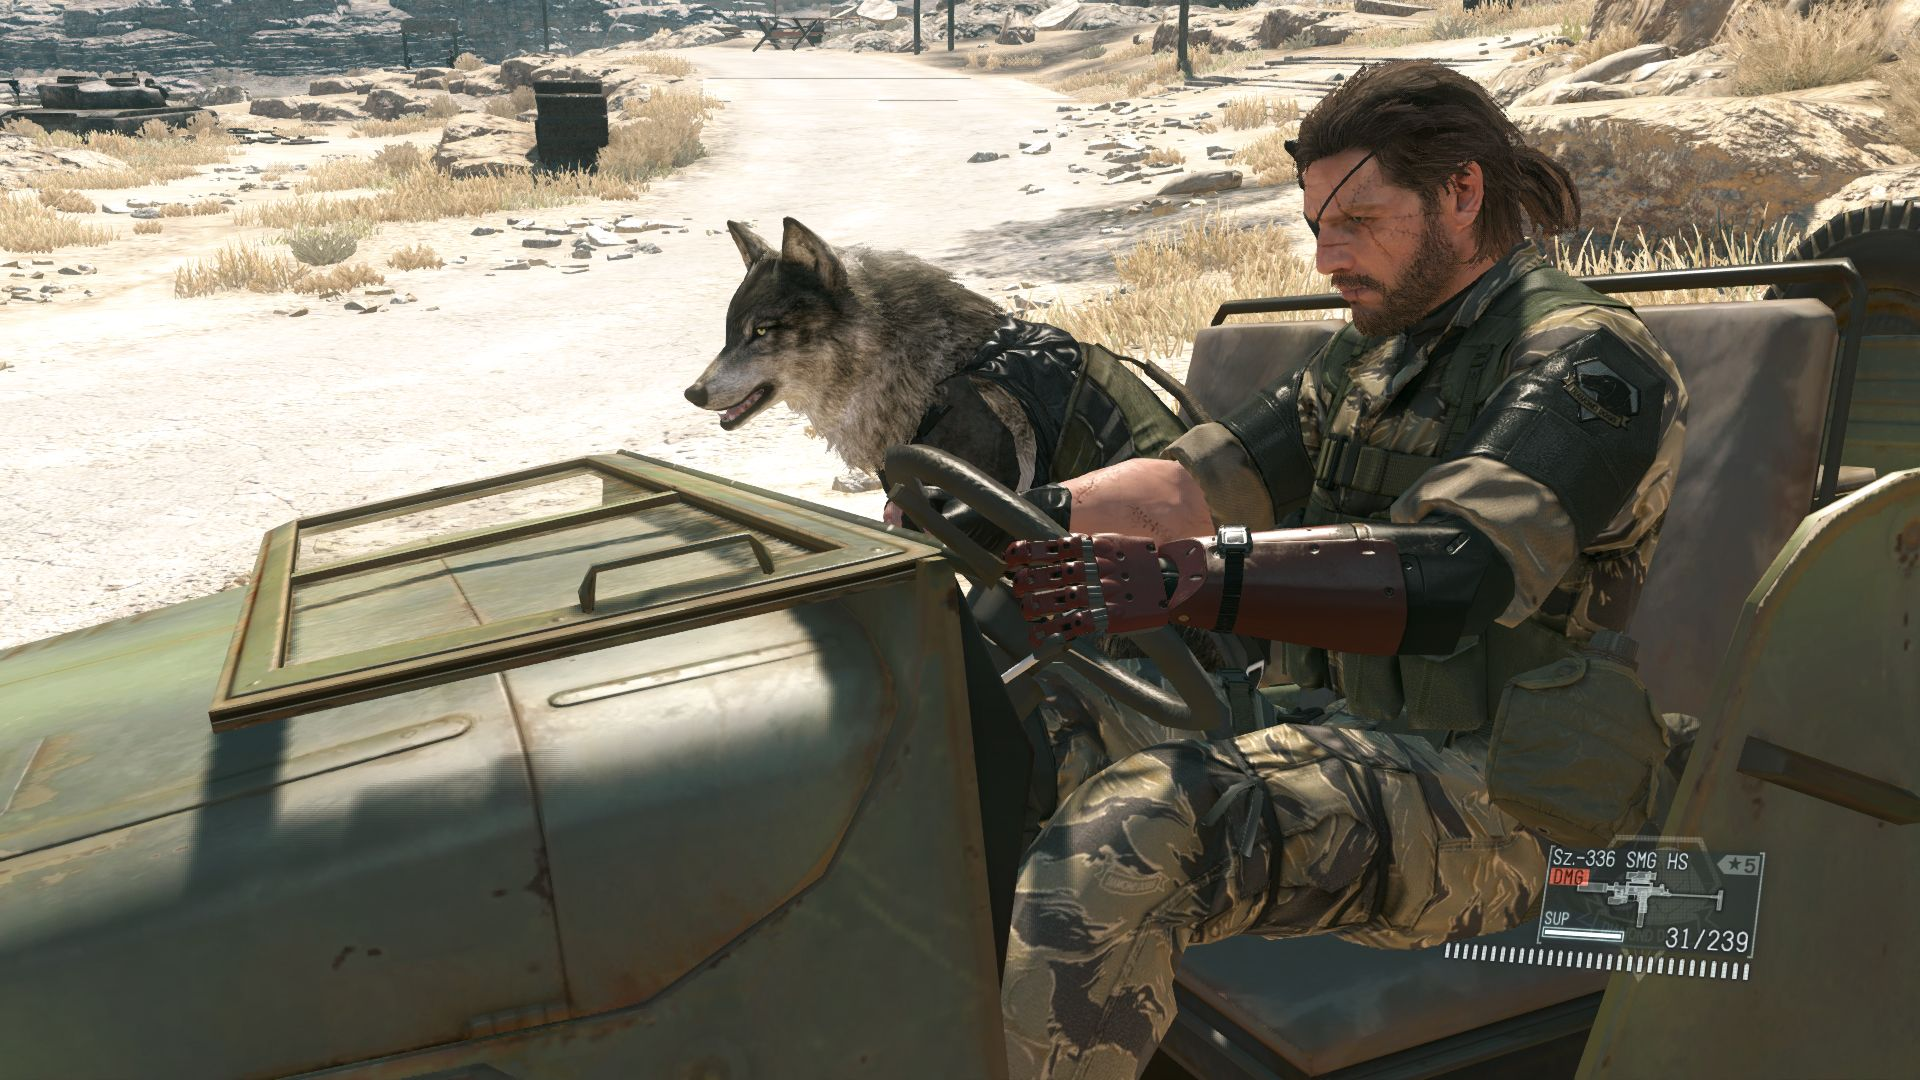 Metal Gear Solid 5 is a masterpiece